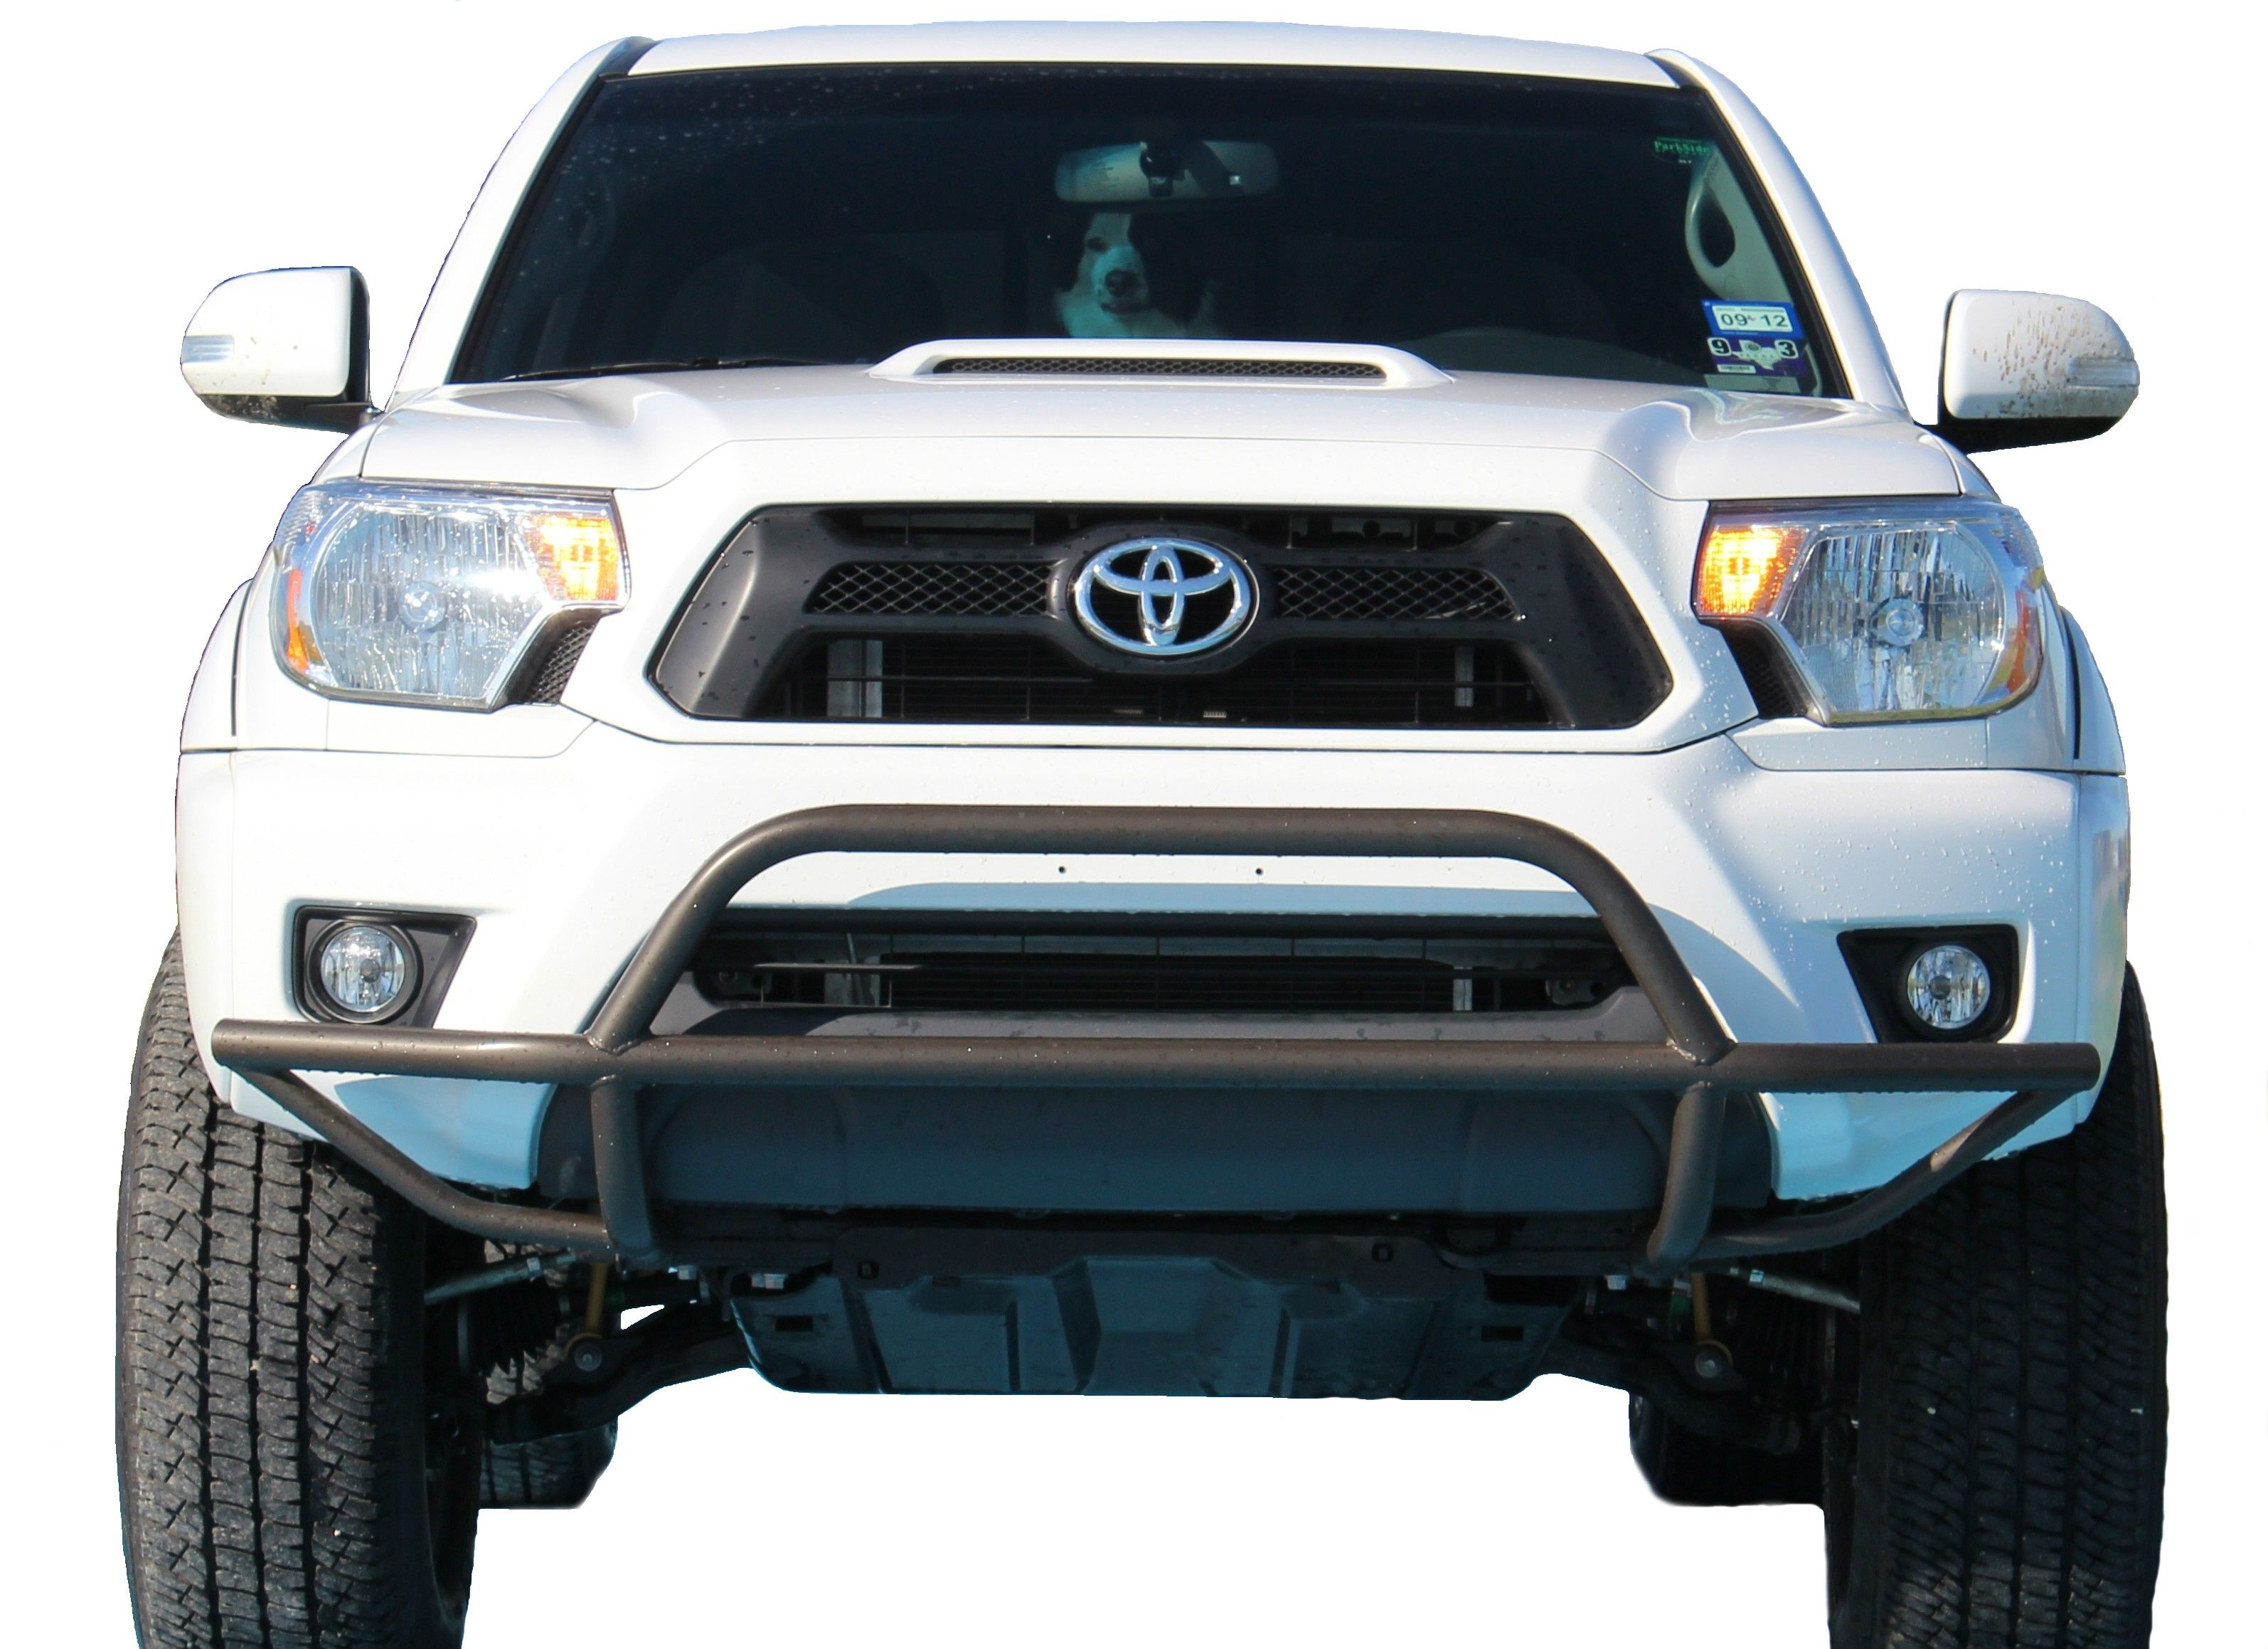 Avid tacoma front bumper guard tacoma pinterest toyota toyota avid light bar lighting is a vital part of your vehicle for night time driving there are many types of lighting componen mozeypictures Gallery